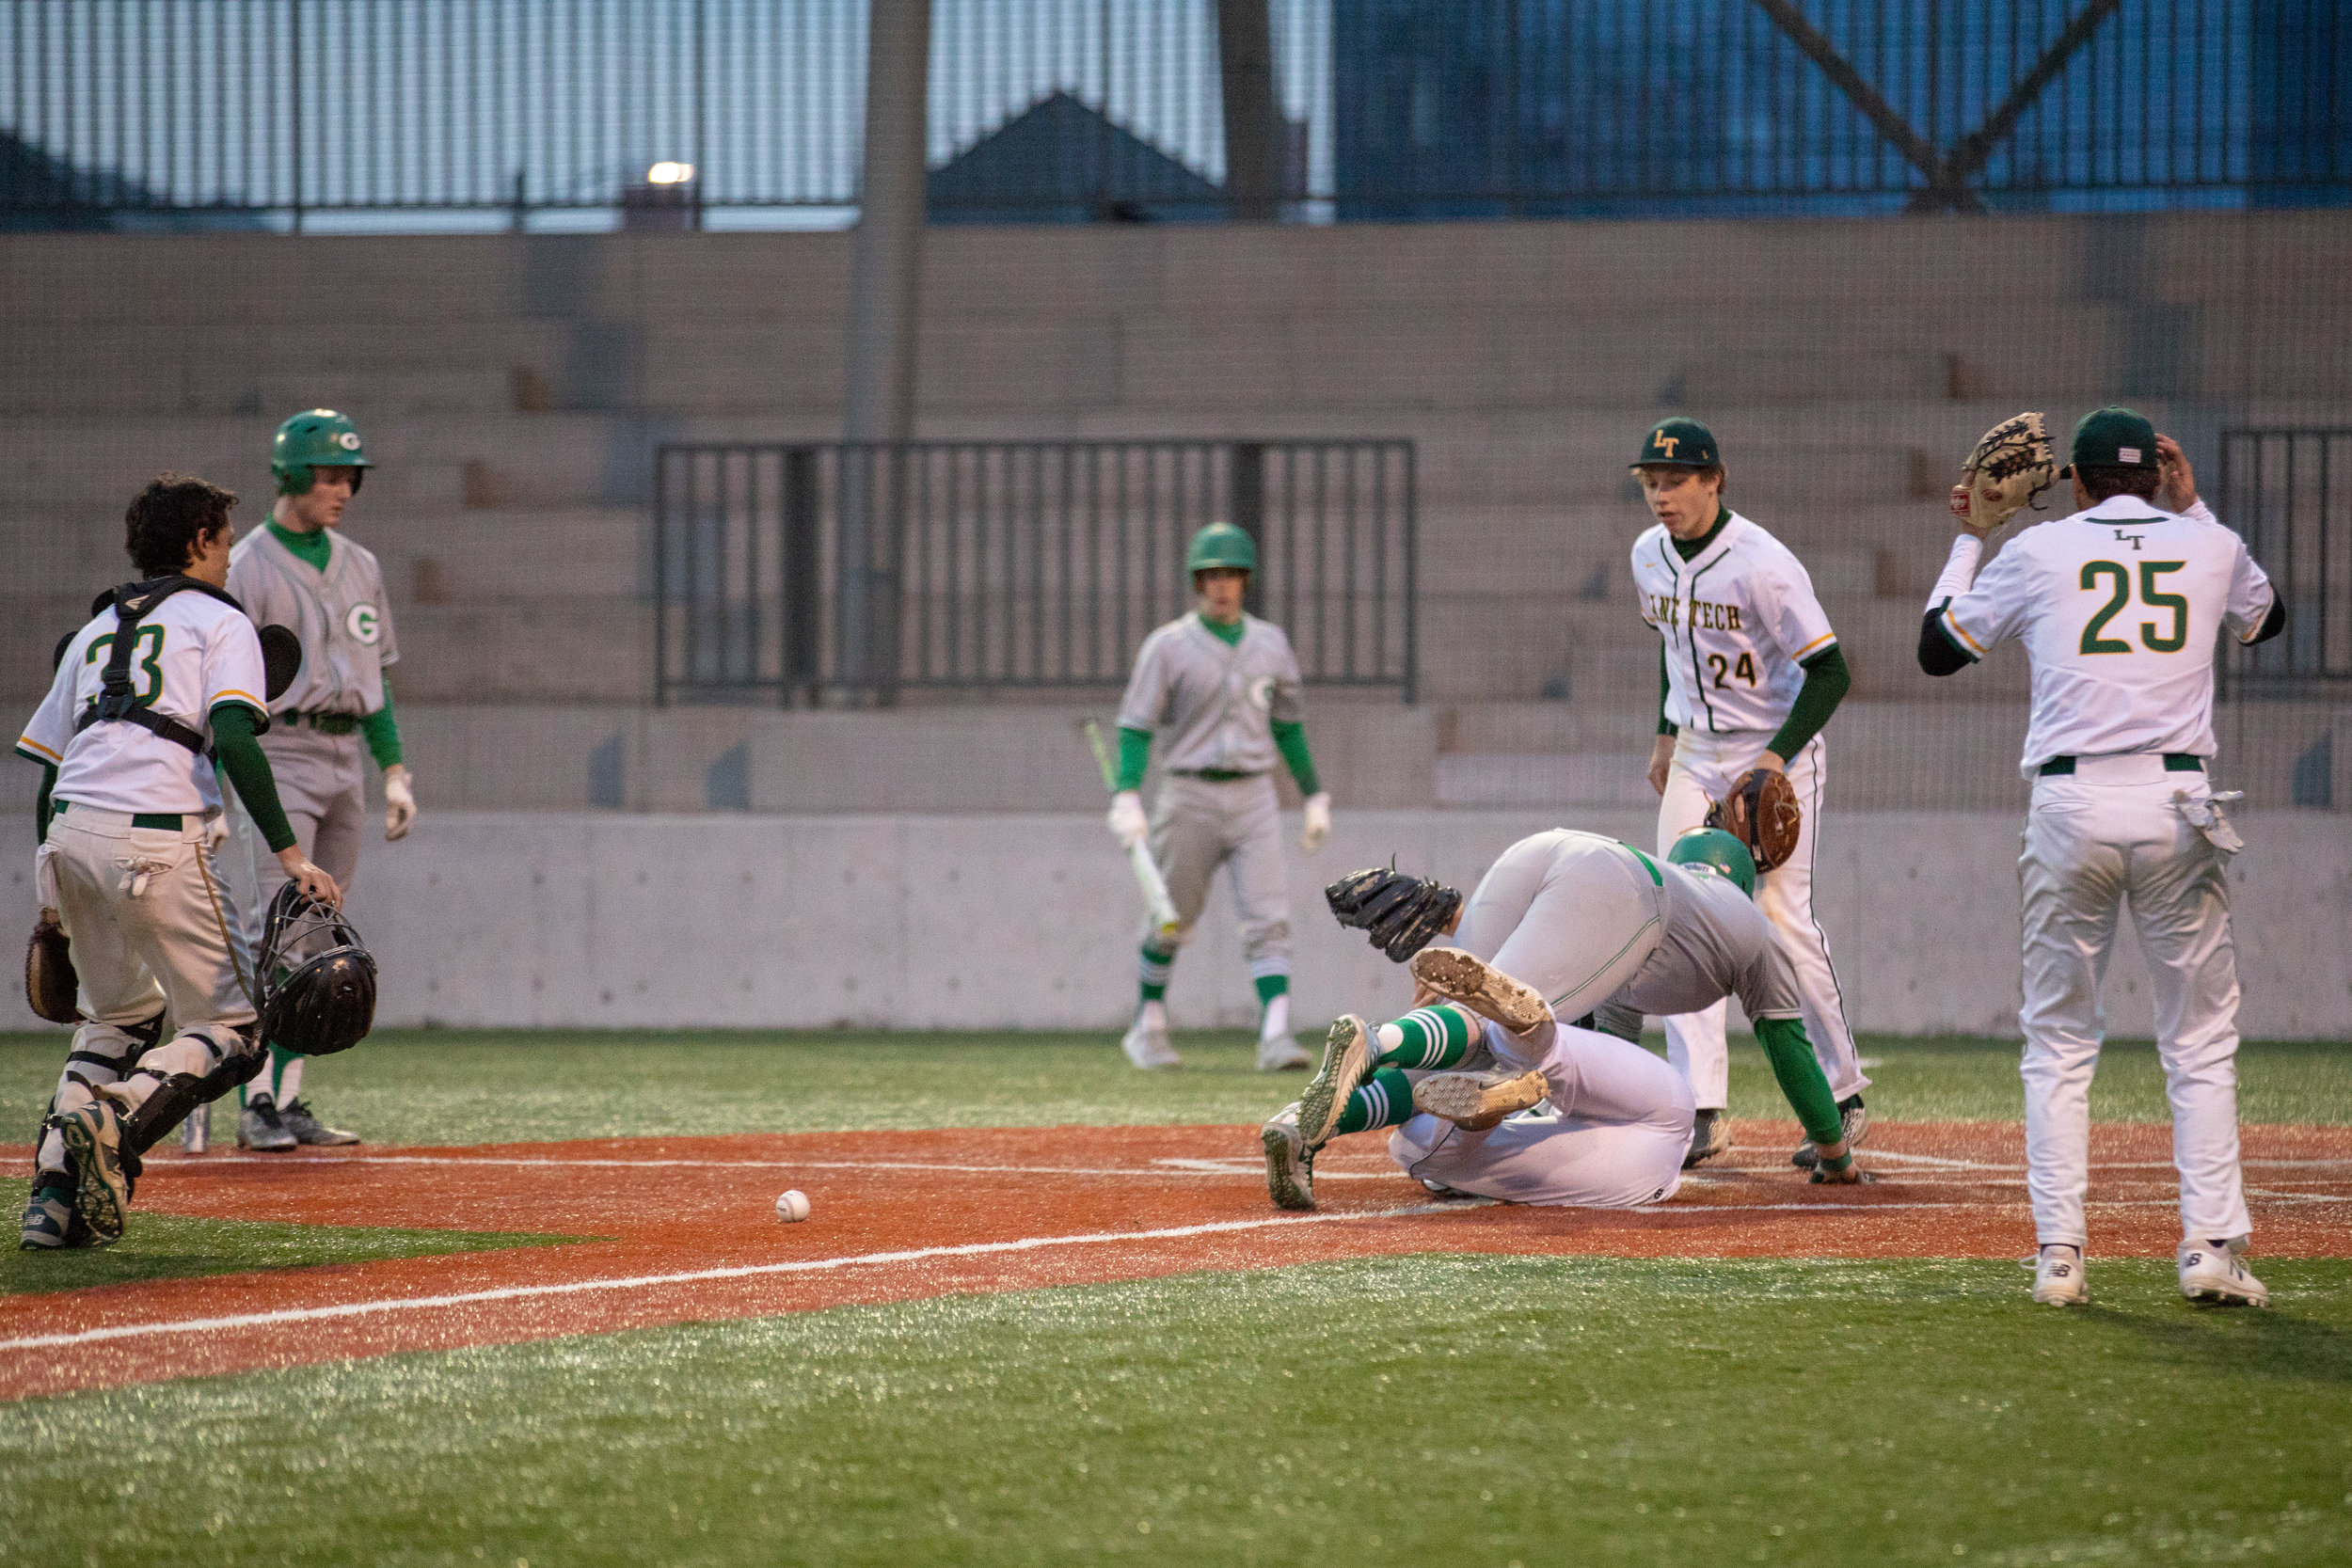 Lane Tech play at the plate